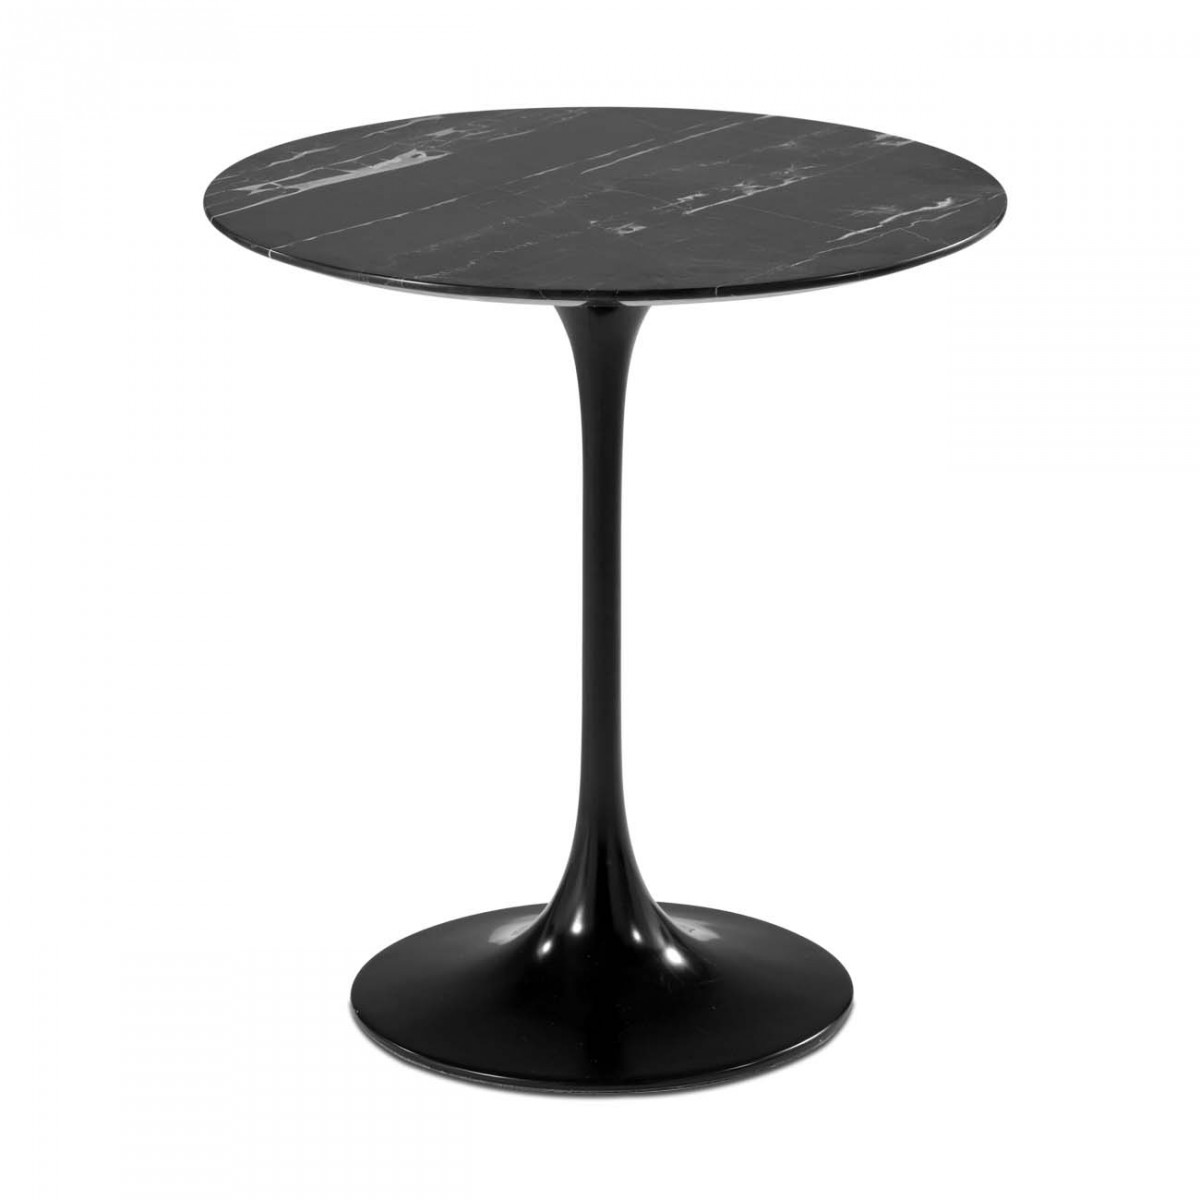 furniture-astounding-round-black-marble-saarinen-side-table-and-black-tulip-table-legs-for-living-room-decoration-entrancing-furniture-for-living-room-decoration-with-saarinen-side-table.jpg